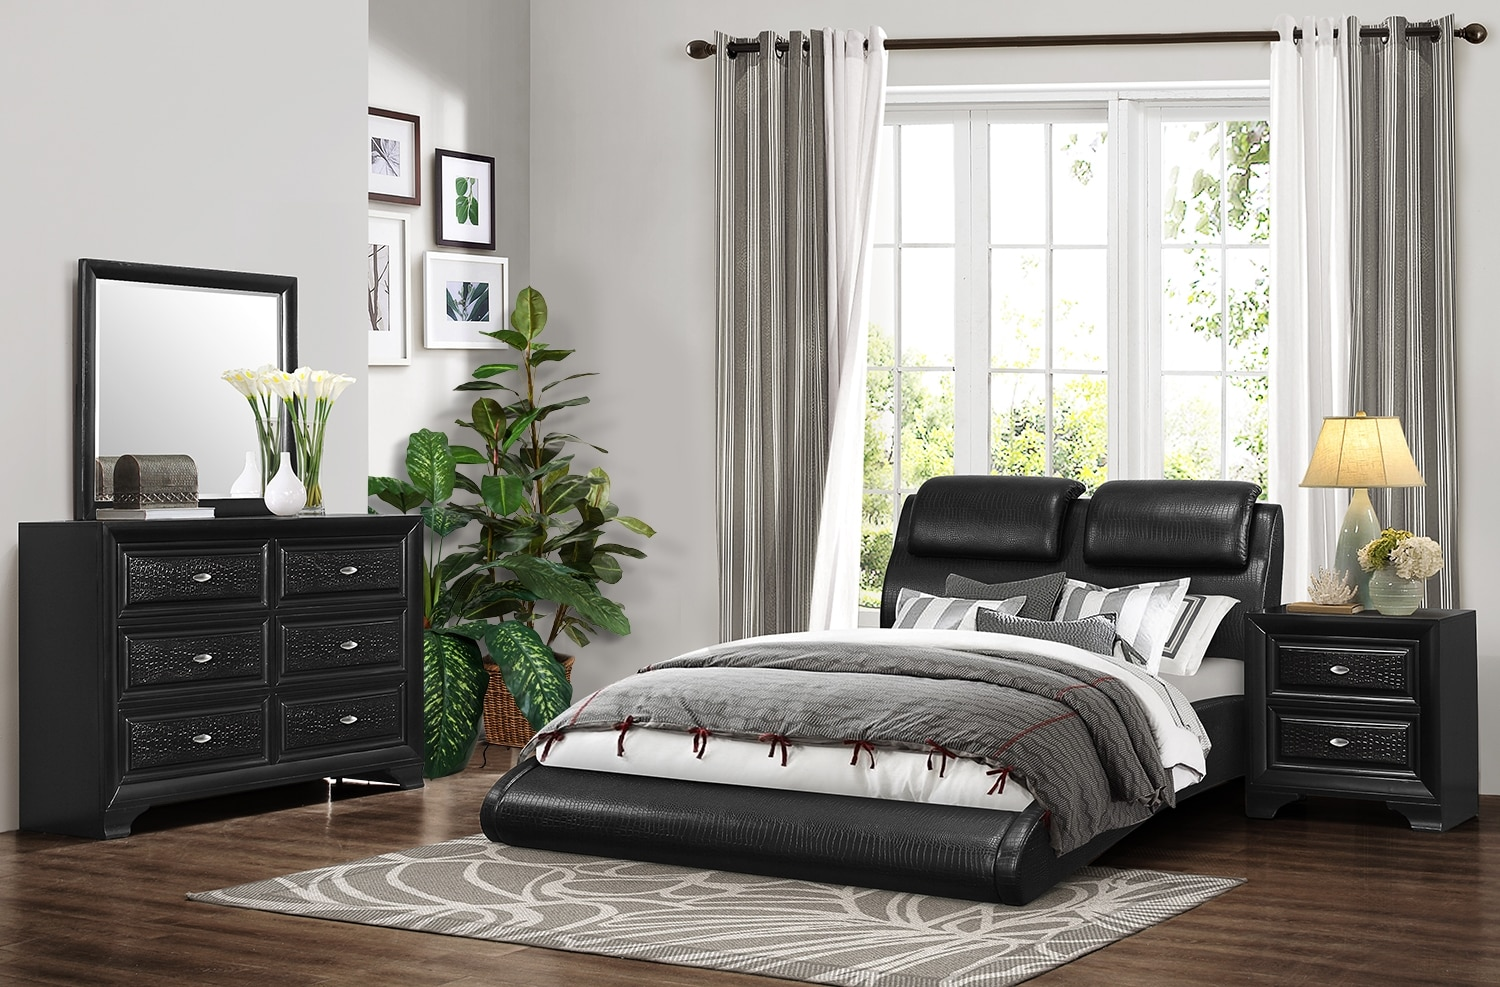 Bedroom Furniture - Roma 5-Piece Queen Bedroom Set - Black